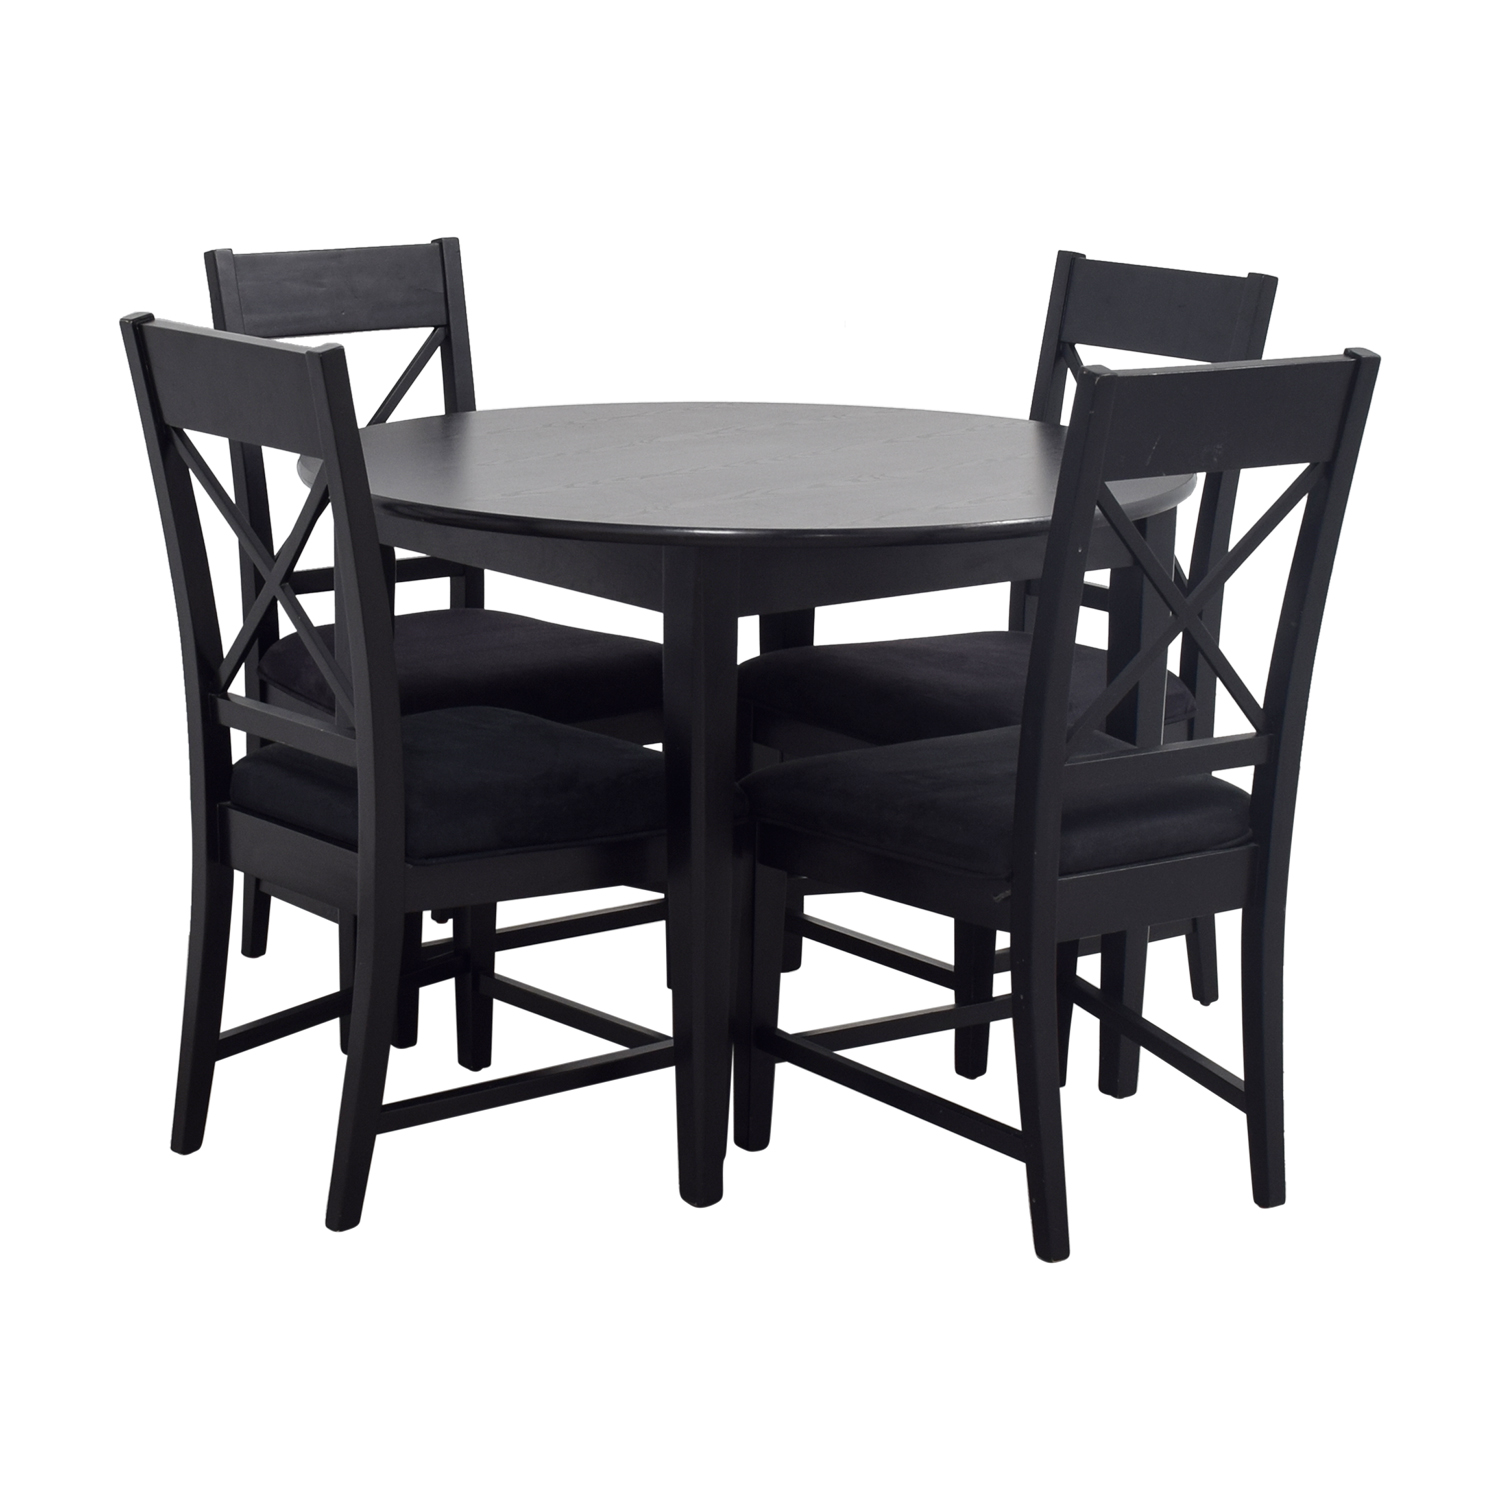 Round Black Wood Dining Set / Tables